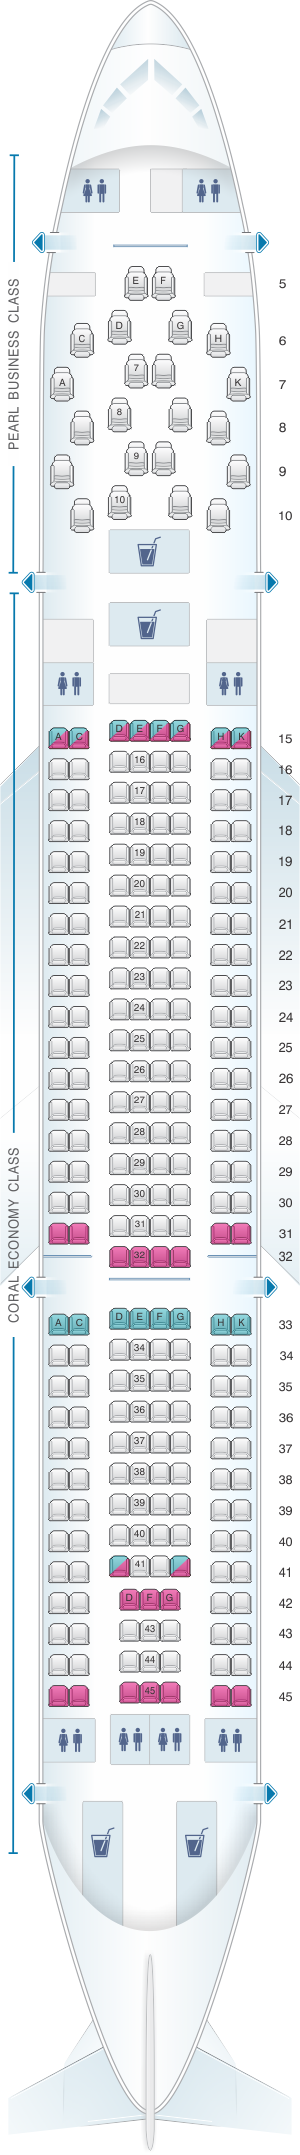 Seat map for Etihad Airways Airbus A330 200